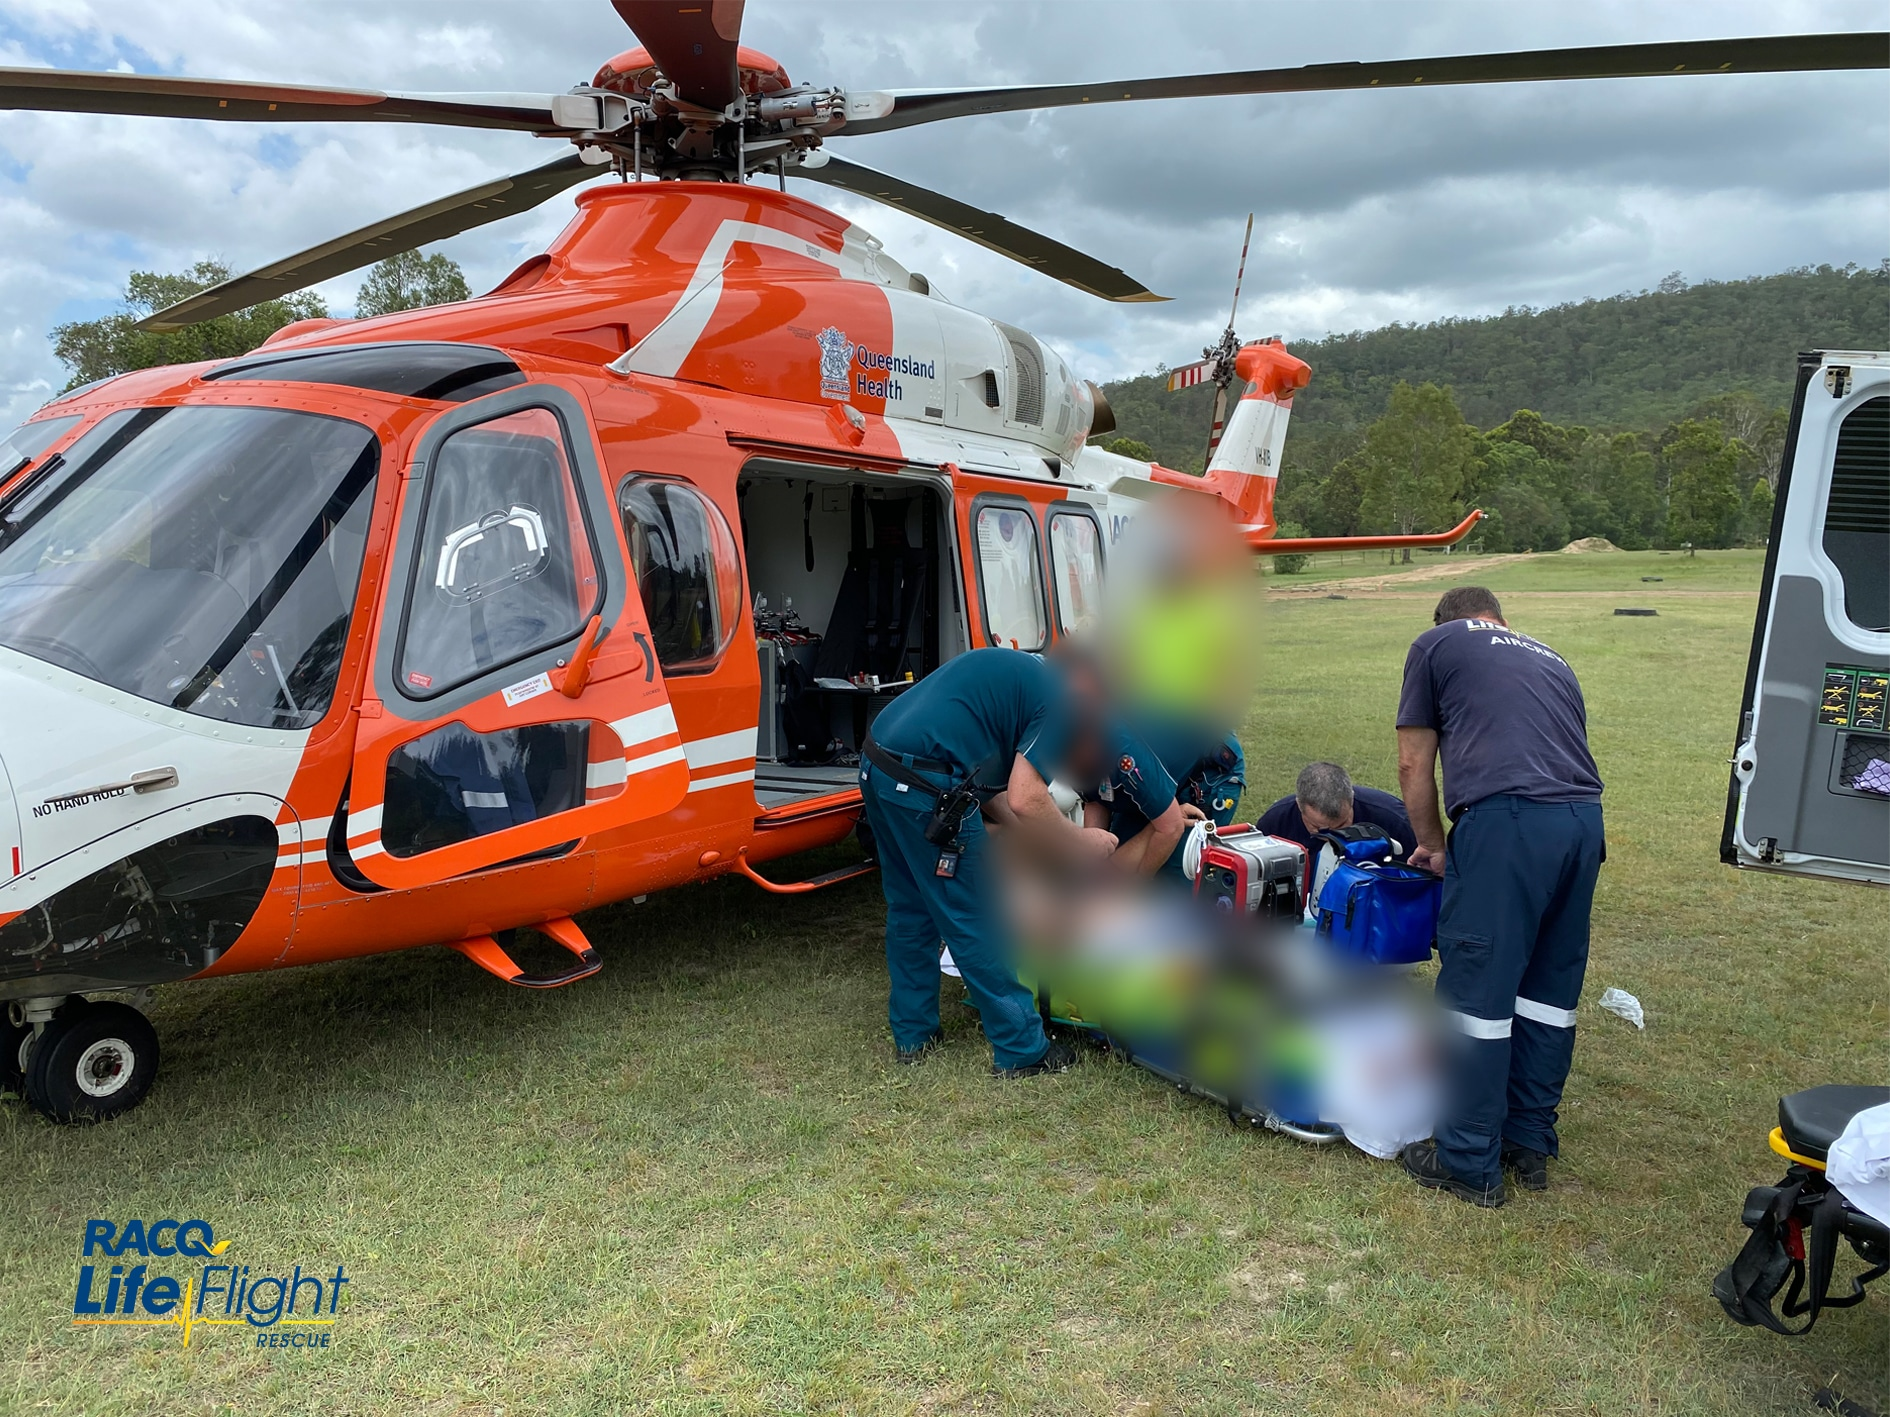 RACQ LifeFlight Rescue airlifts seriously injured motocross rider